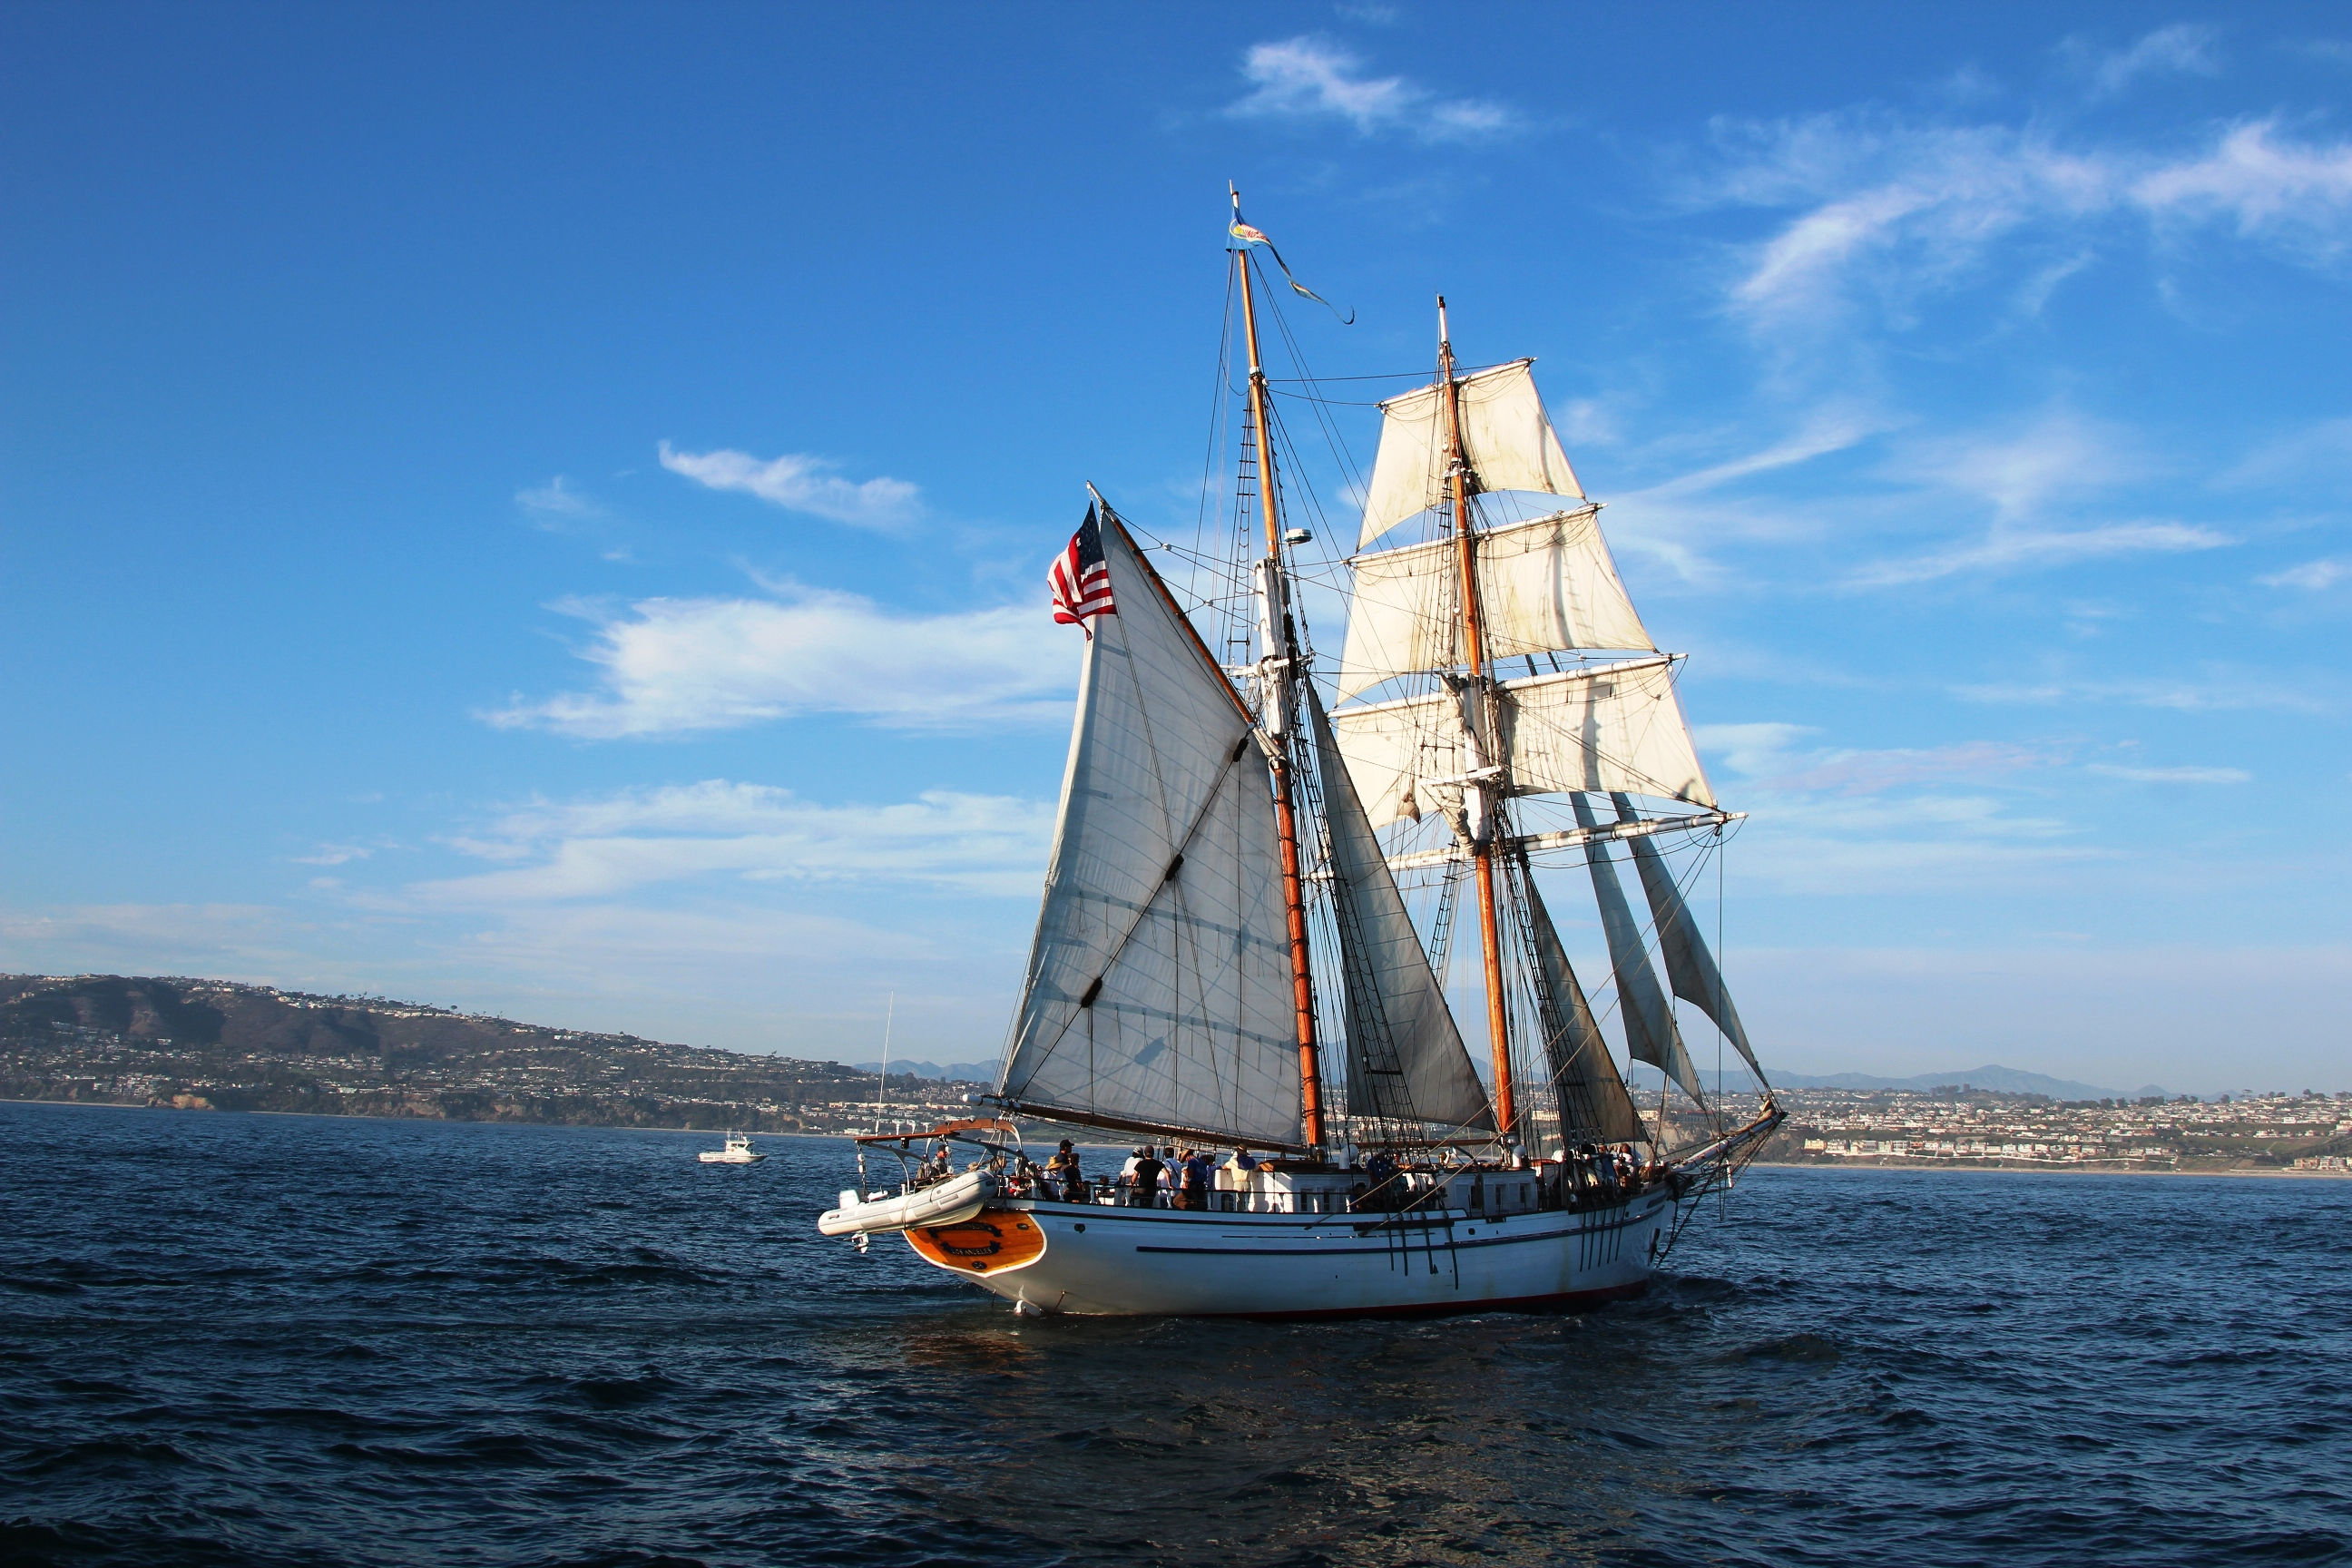 Ahoy, All Hands on Deck as Tall Ships Land in Dana Point   Dana ...